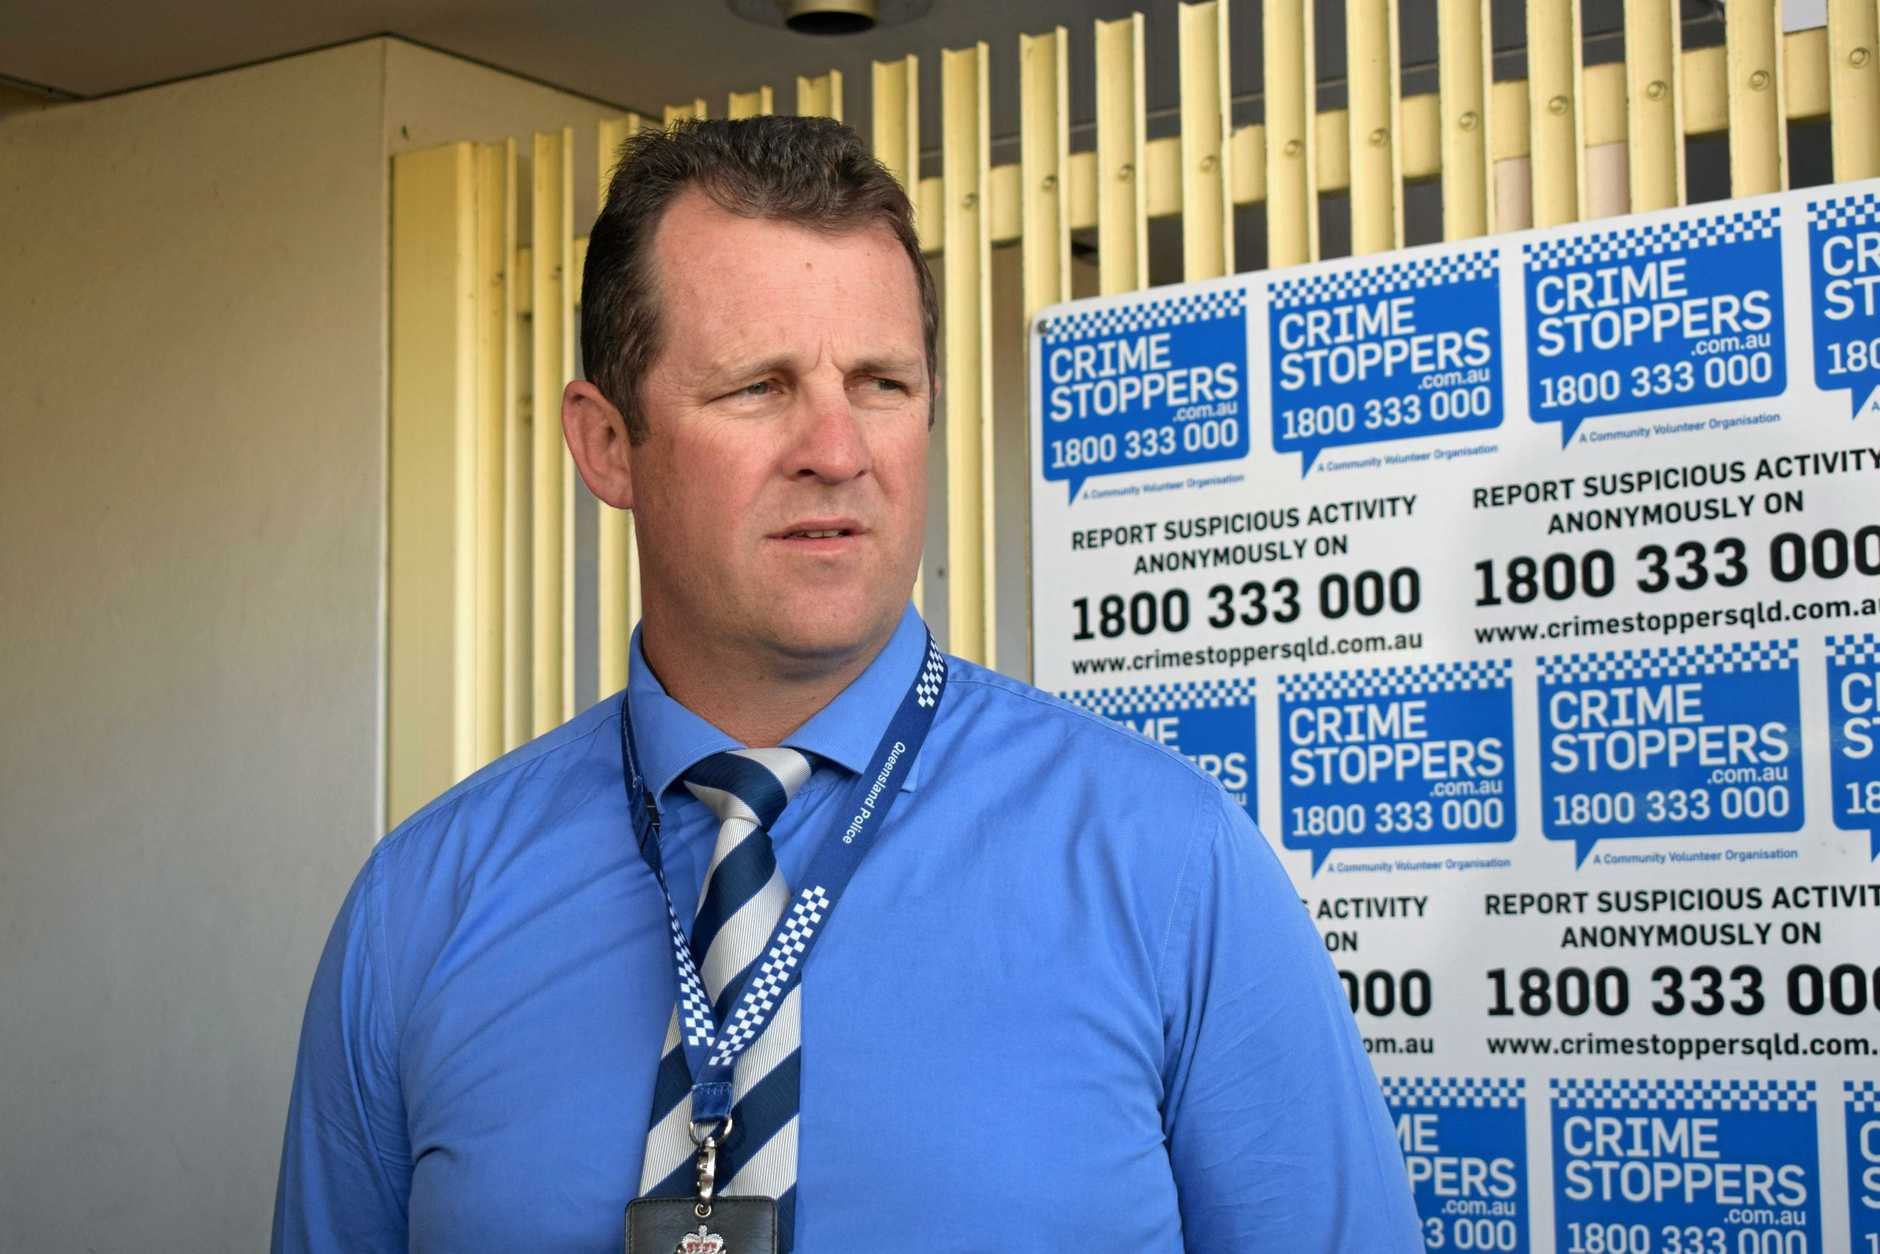 Dect Snr Sgt Luke Peachy addressed media about an assault in North Rockhampton on Saturday night.